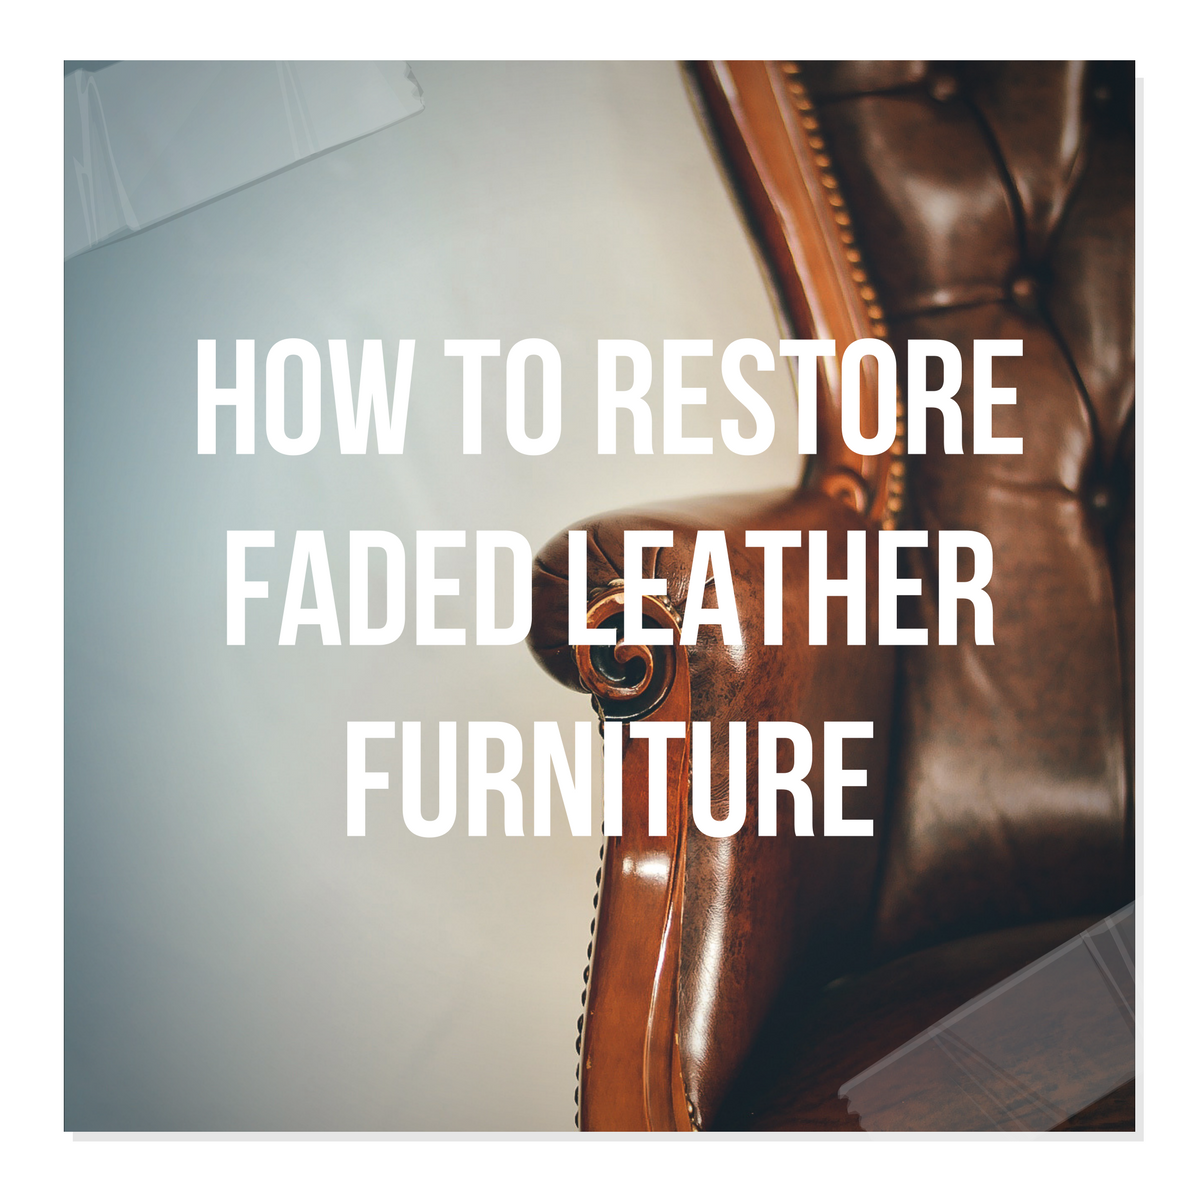 Wondrous How To Restore Faded Leather Furniture Kimberly Satorres Forskolin Free Trial Chair Design Images Forskolin Free Trialorg